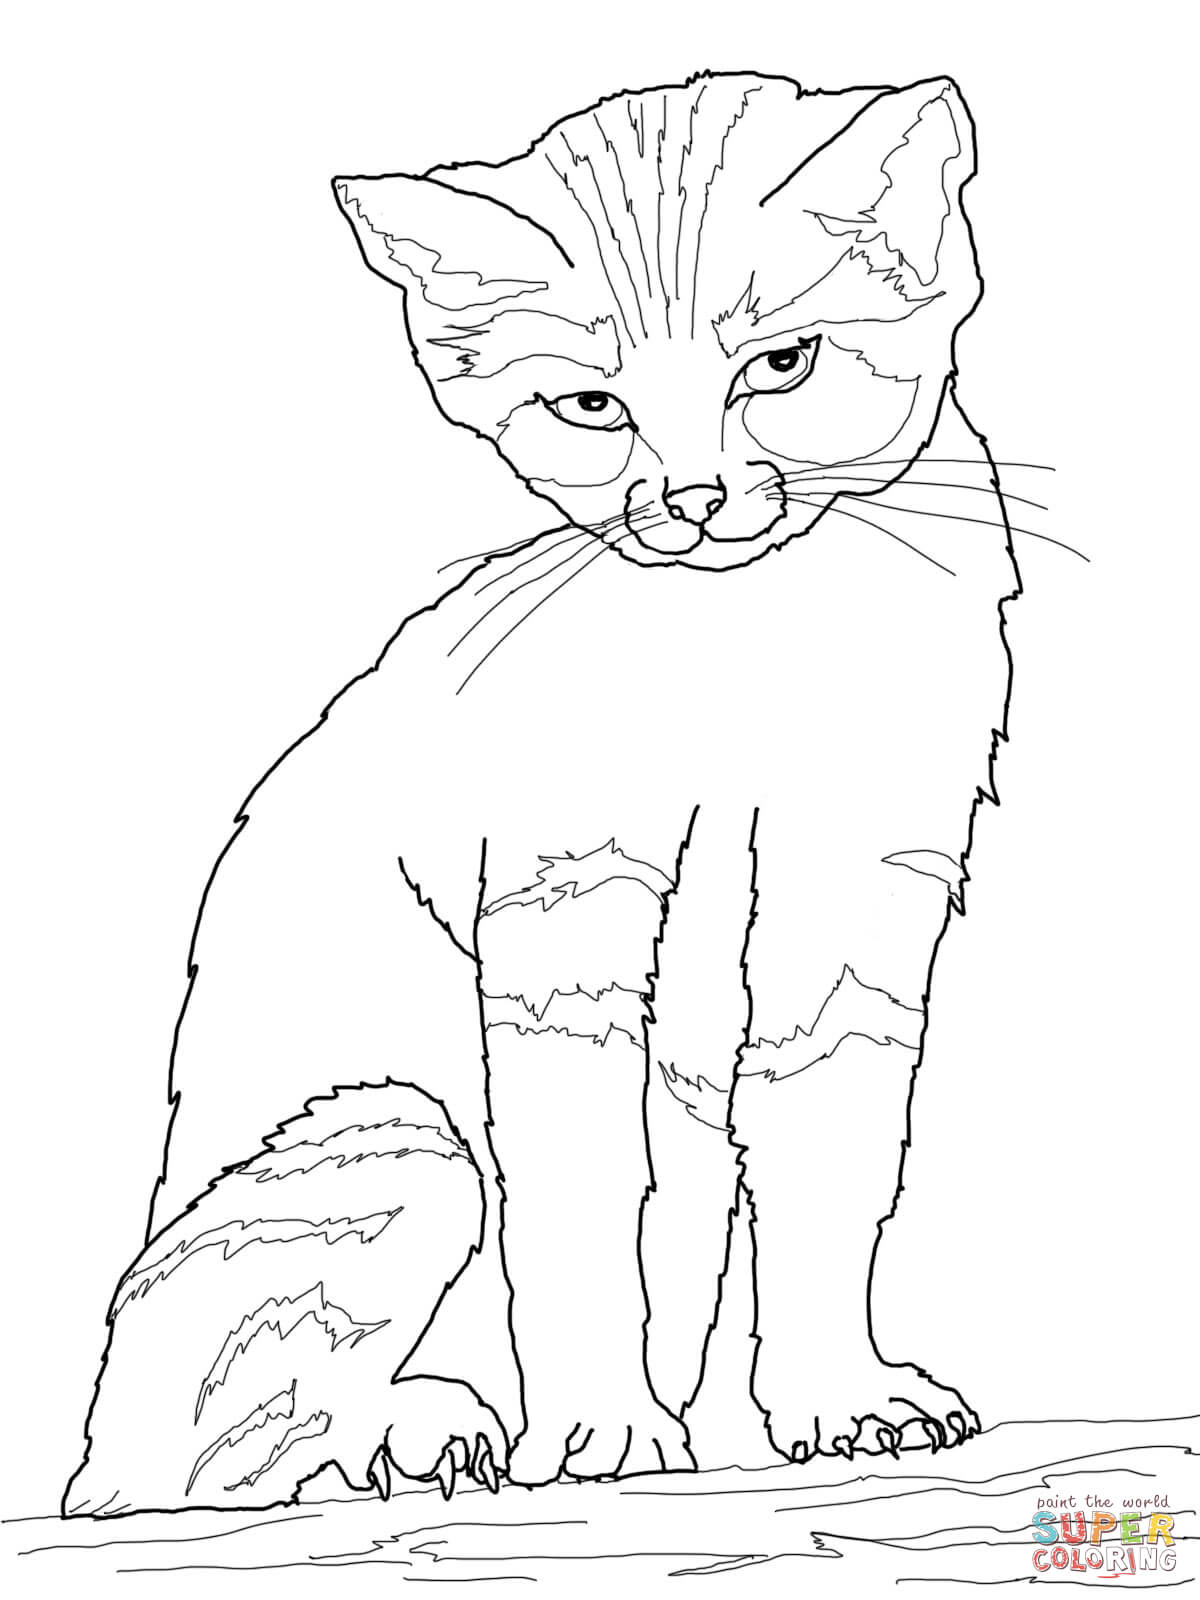 Cats And Kittens Drawing at GetDrawings.com | Free for personal use ...